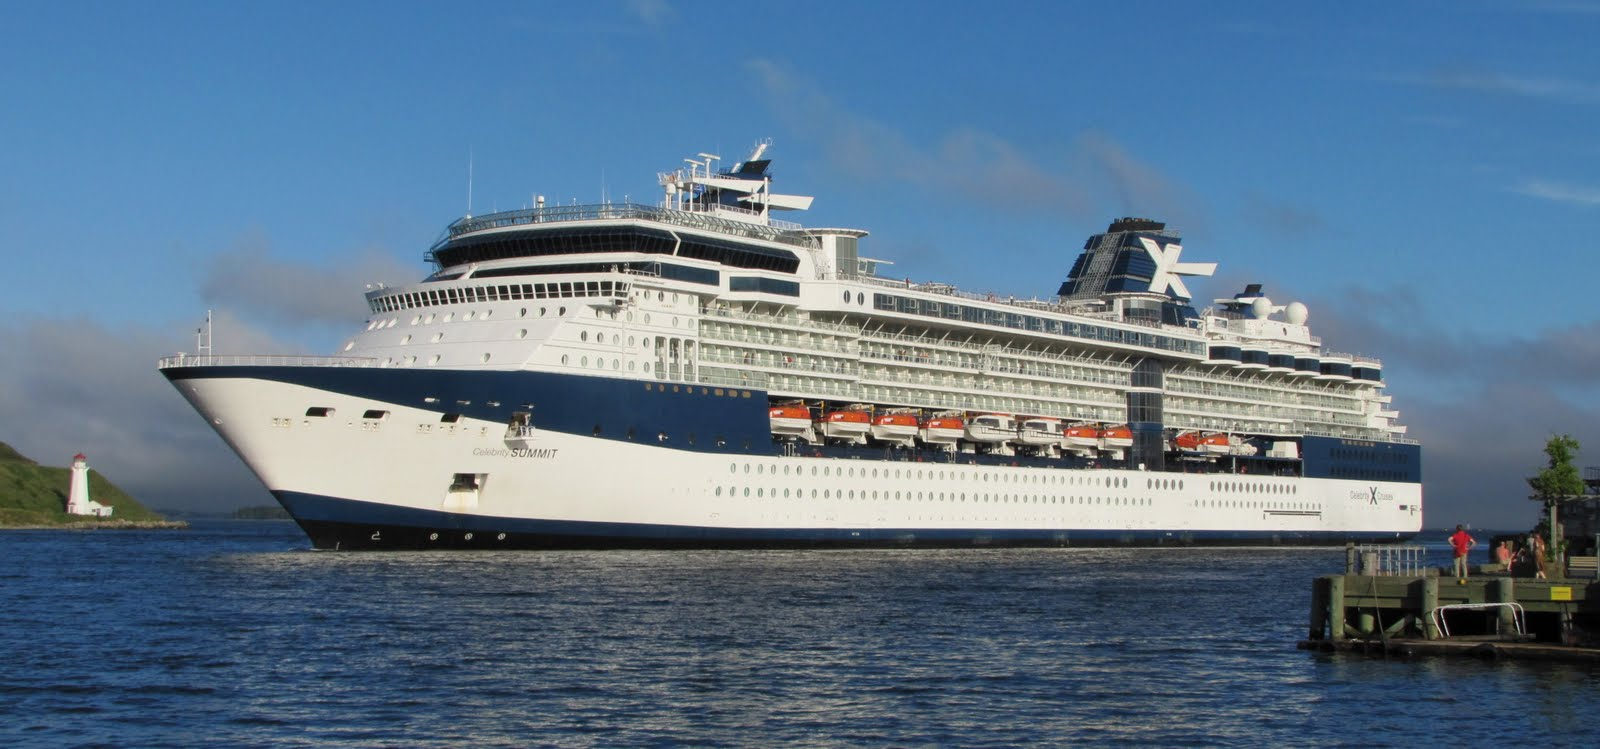 Celebrity Summit Cruise Ship - Reviews and Photos ...